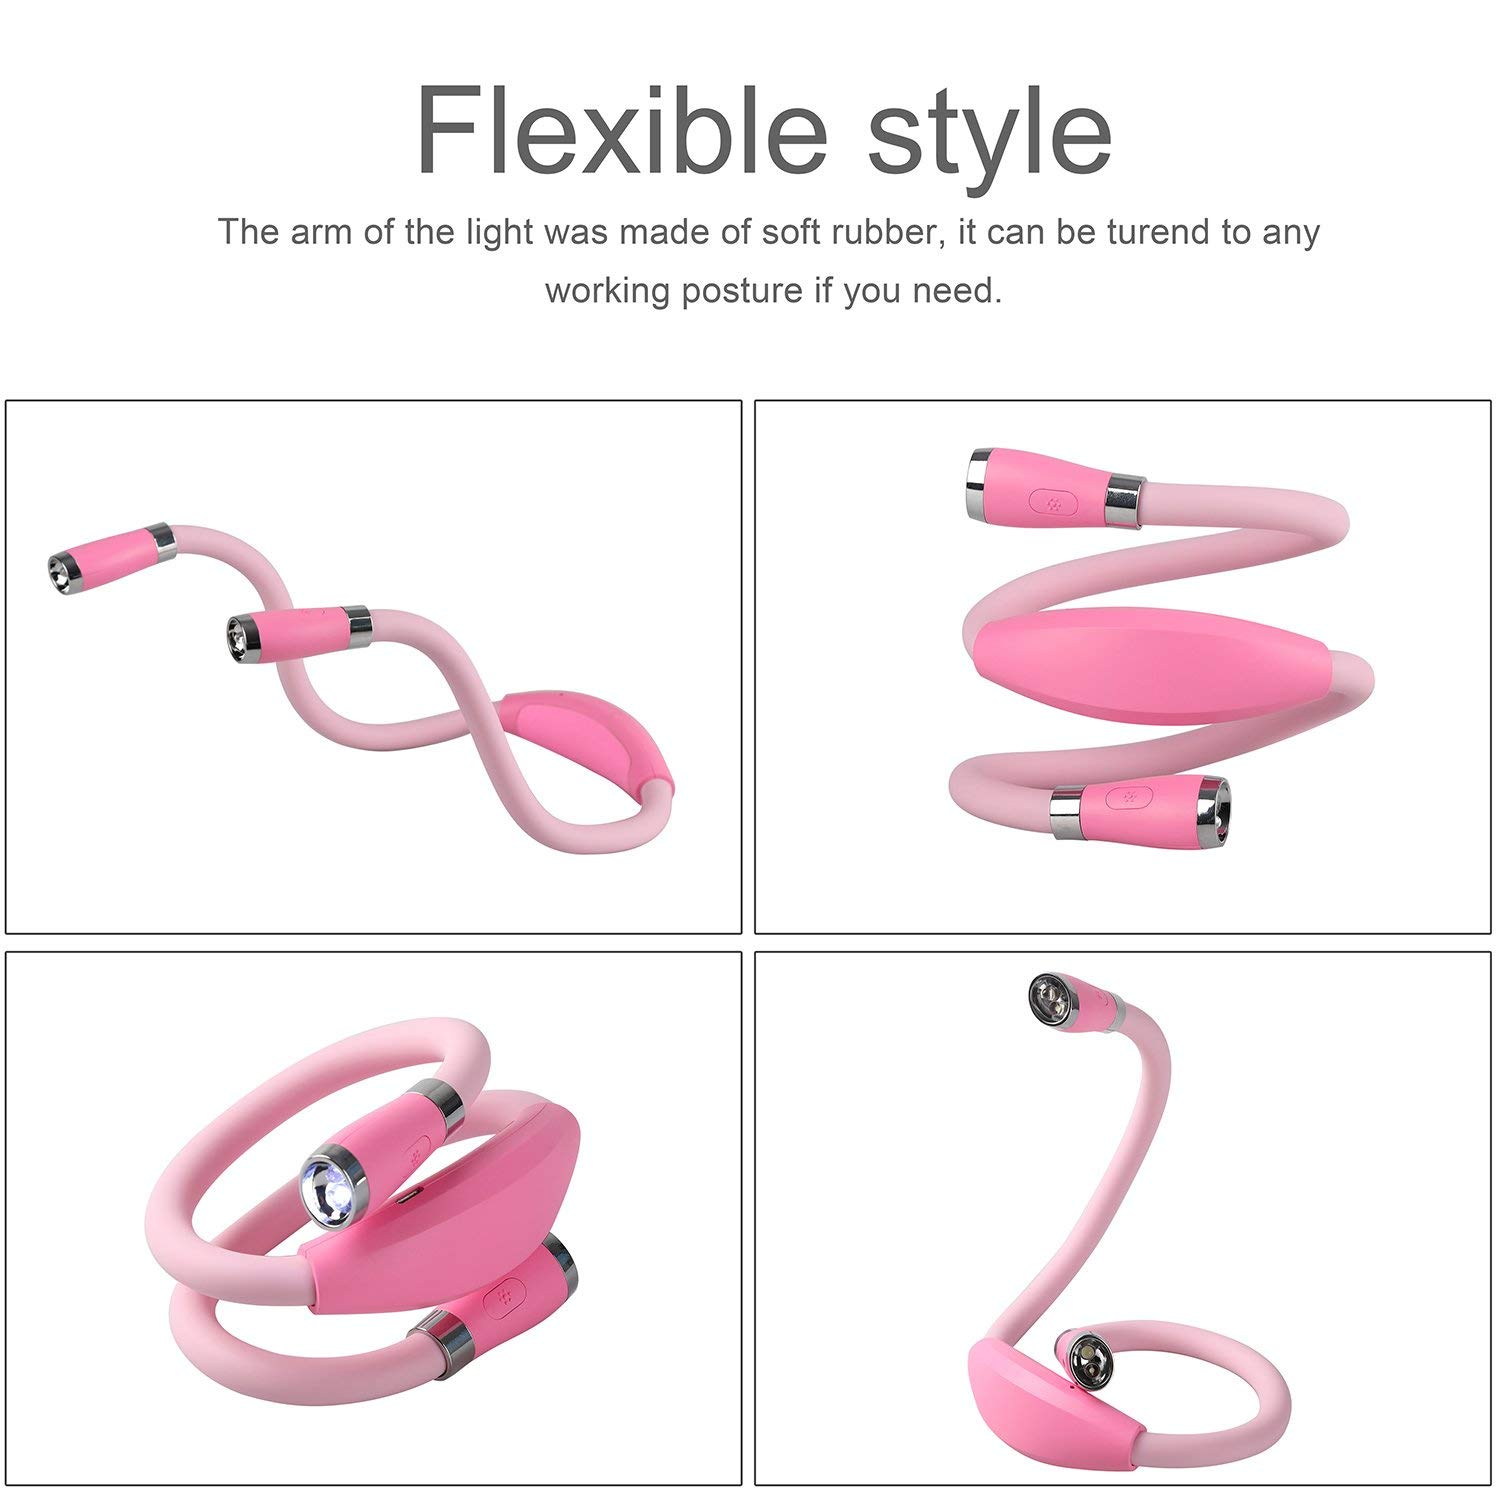 Rechargeable LED Book Light Neck Hug Light 3 Brightness Modes Flexible Arm for Bed Reading Night Jogging Ideal for Bookworms Kids Crafts Knitting Travel or BBQ 4 LED Hand-Free Extra Bright Lamp